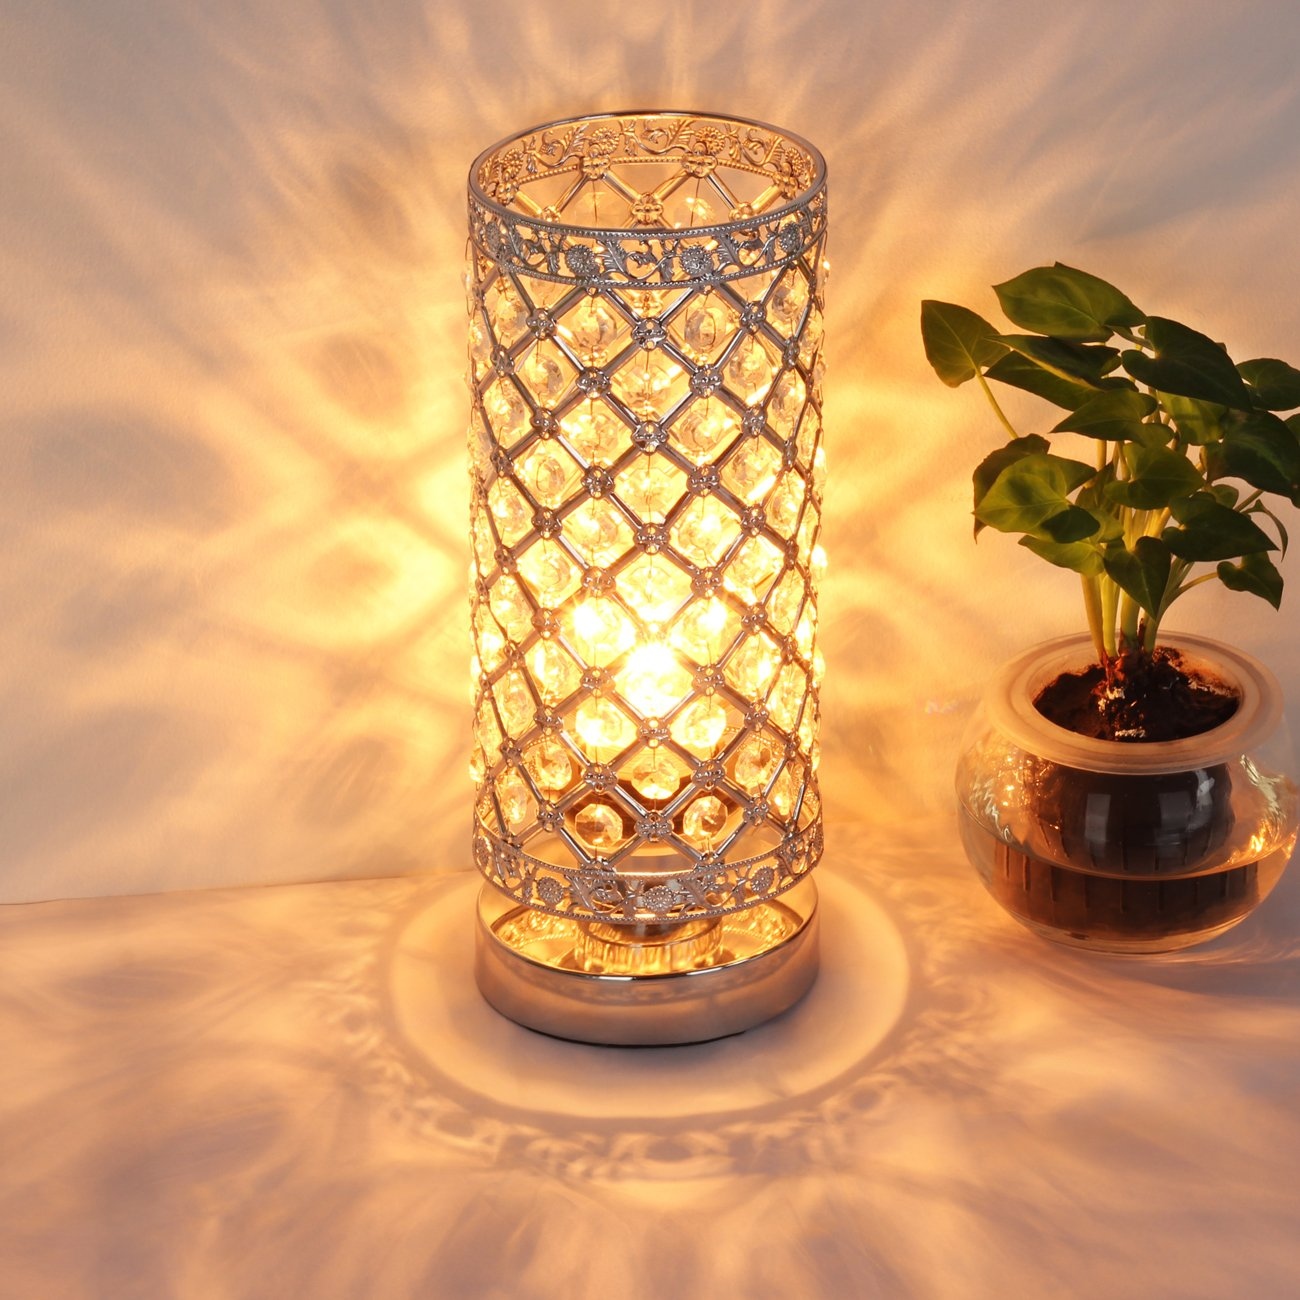 Table Lamp, Petronius Crystal Table Lamps, Decorative Bedside Nightstand Desk Lamp Shade for Bedroom, Living Room, Dining Room, Kitchen by Petronius (Image #2)